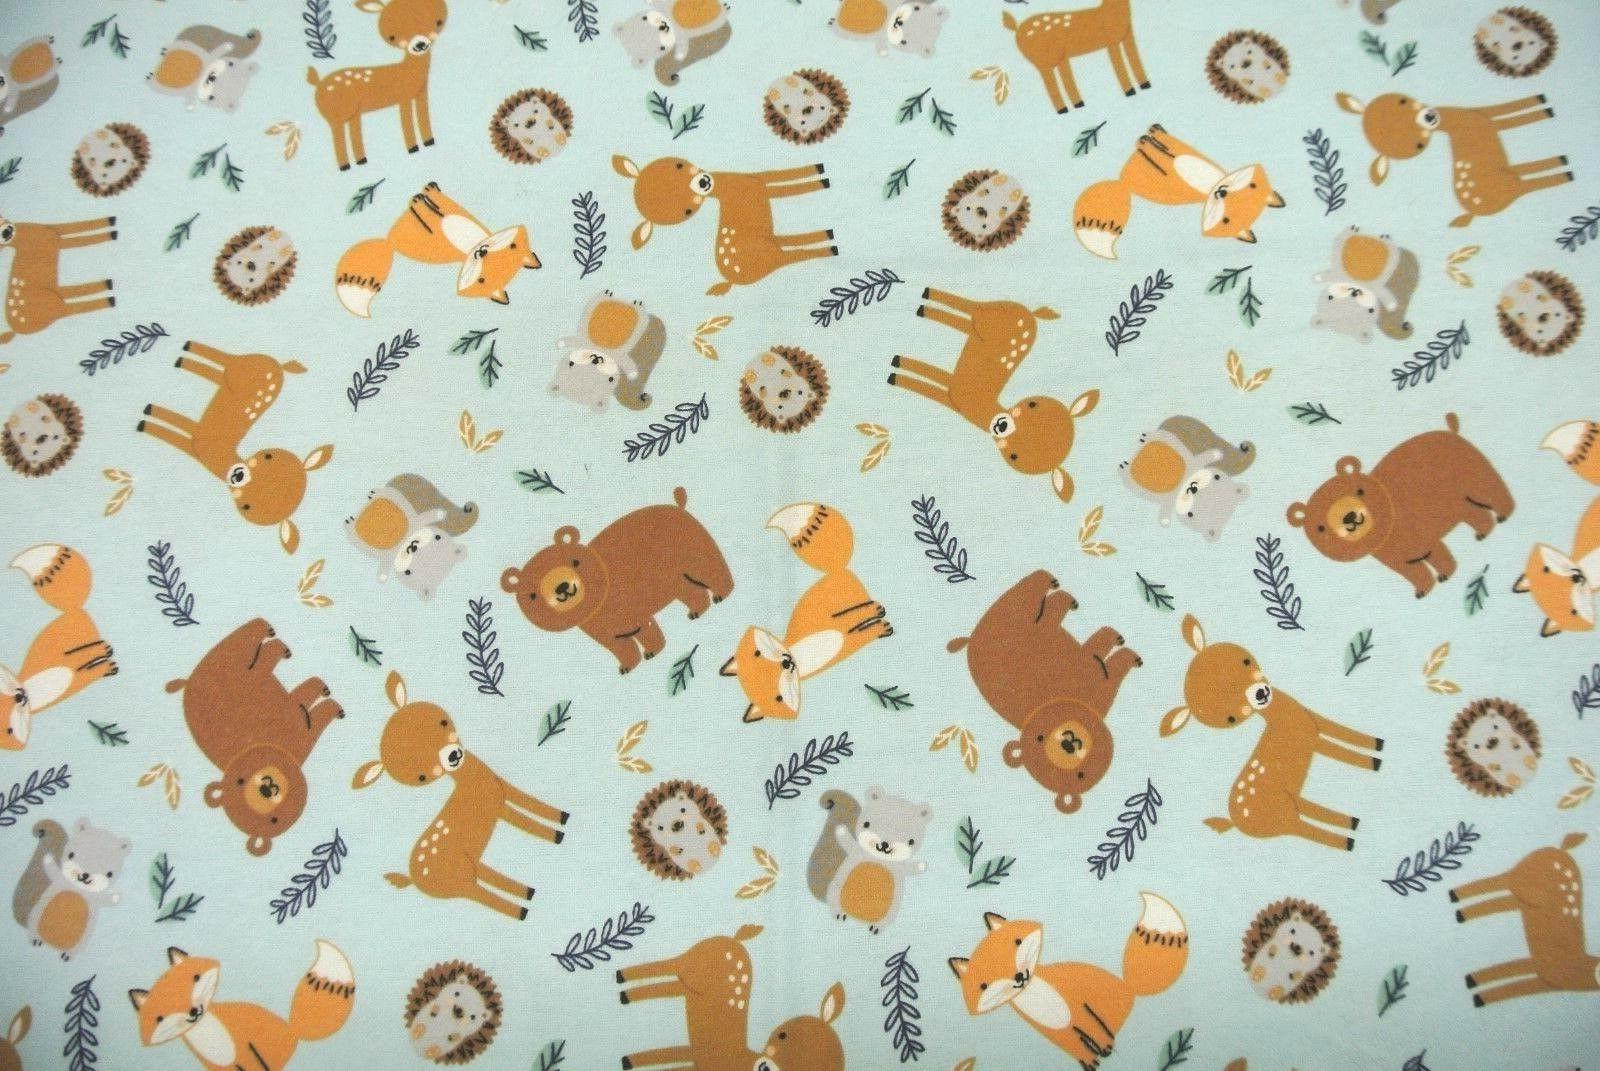 Baby Blanket Foxes Hedgehogs Squirrels Bears Be Personalized 36x40